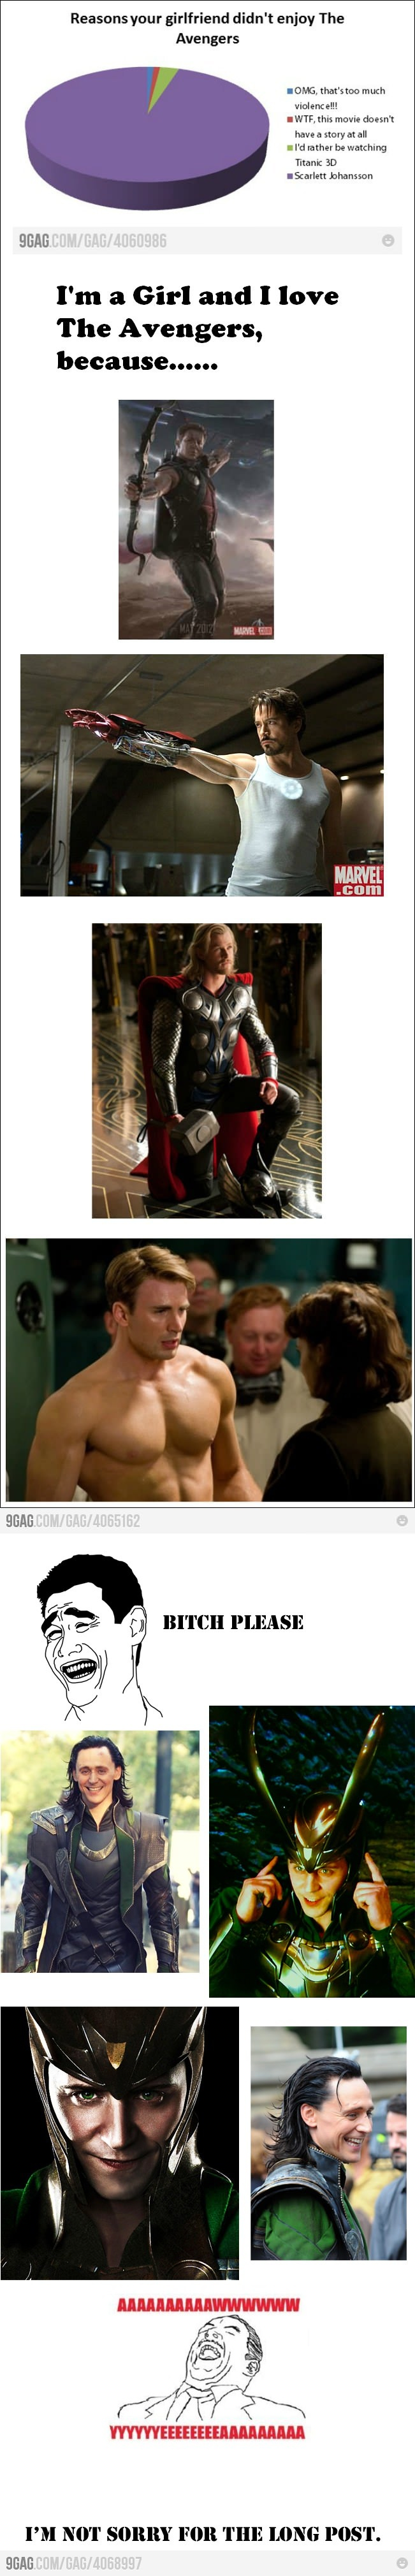 yes, me too. im a girl and i thought the avengers was amazing. but loki and capitain america were my favourite